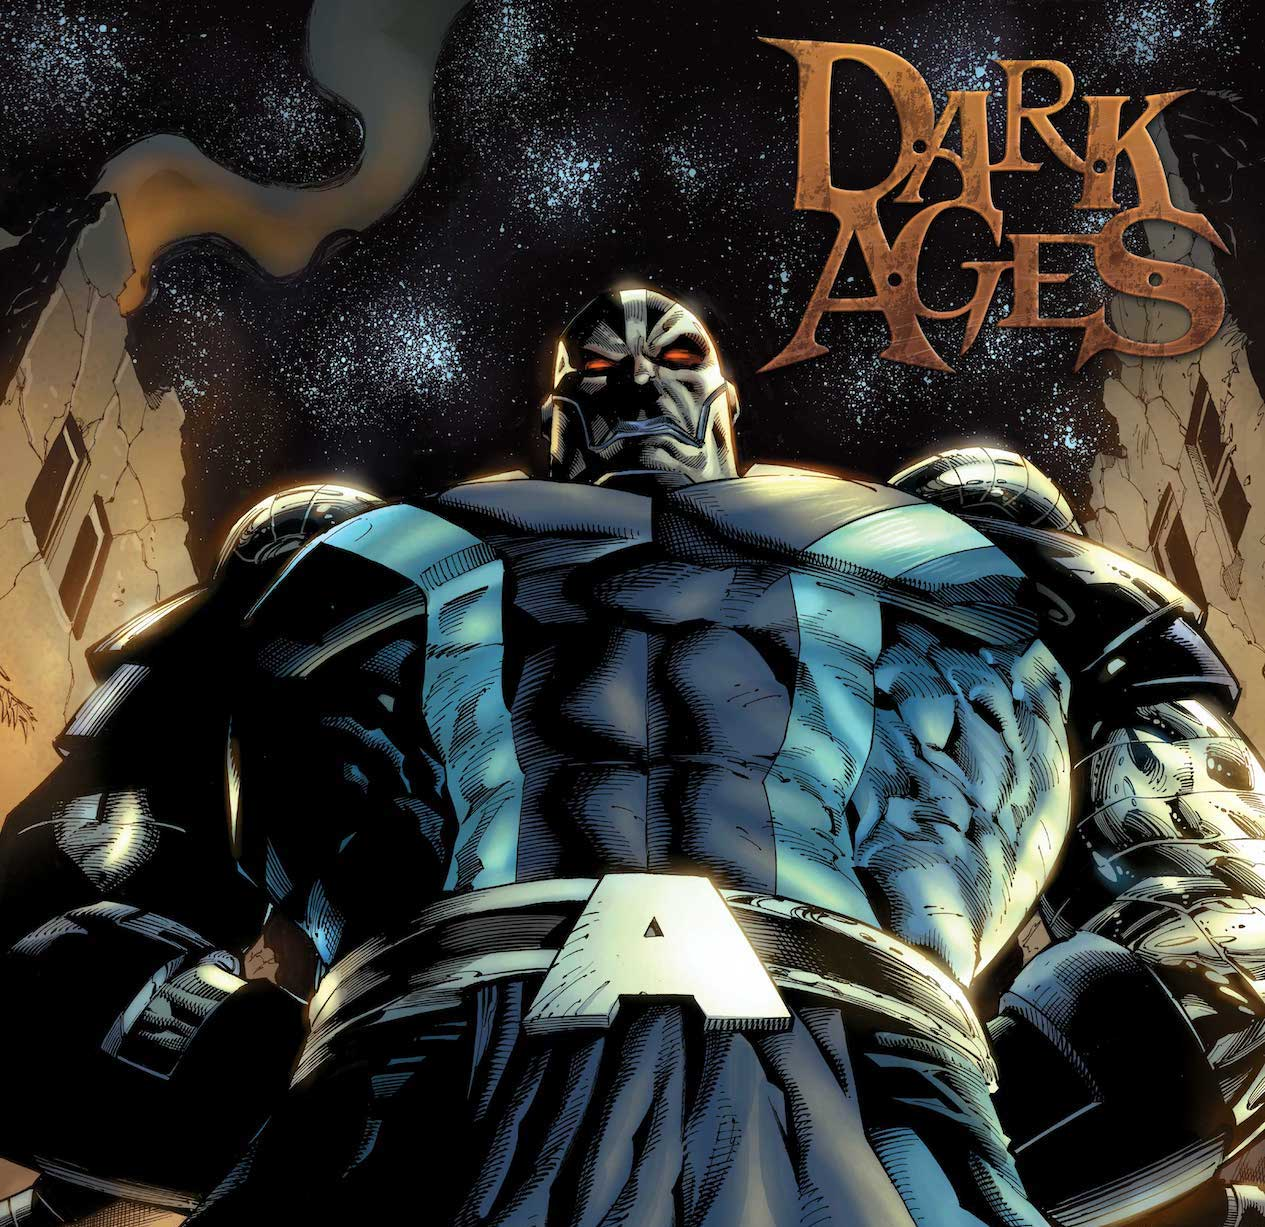 Marvel releases even more 'Dark Ages' teasers ahead of its September 1 launch